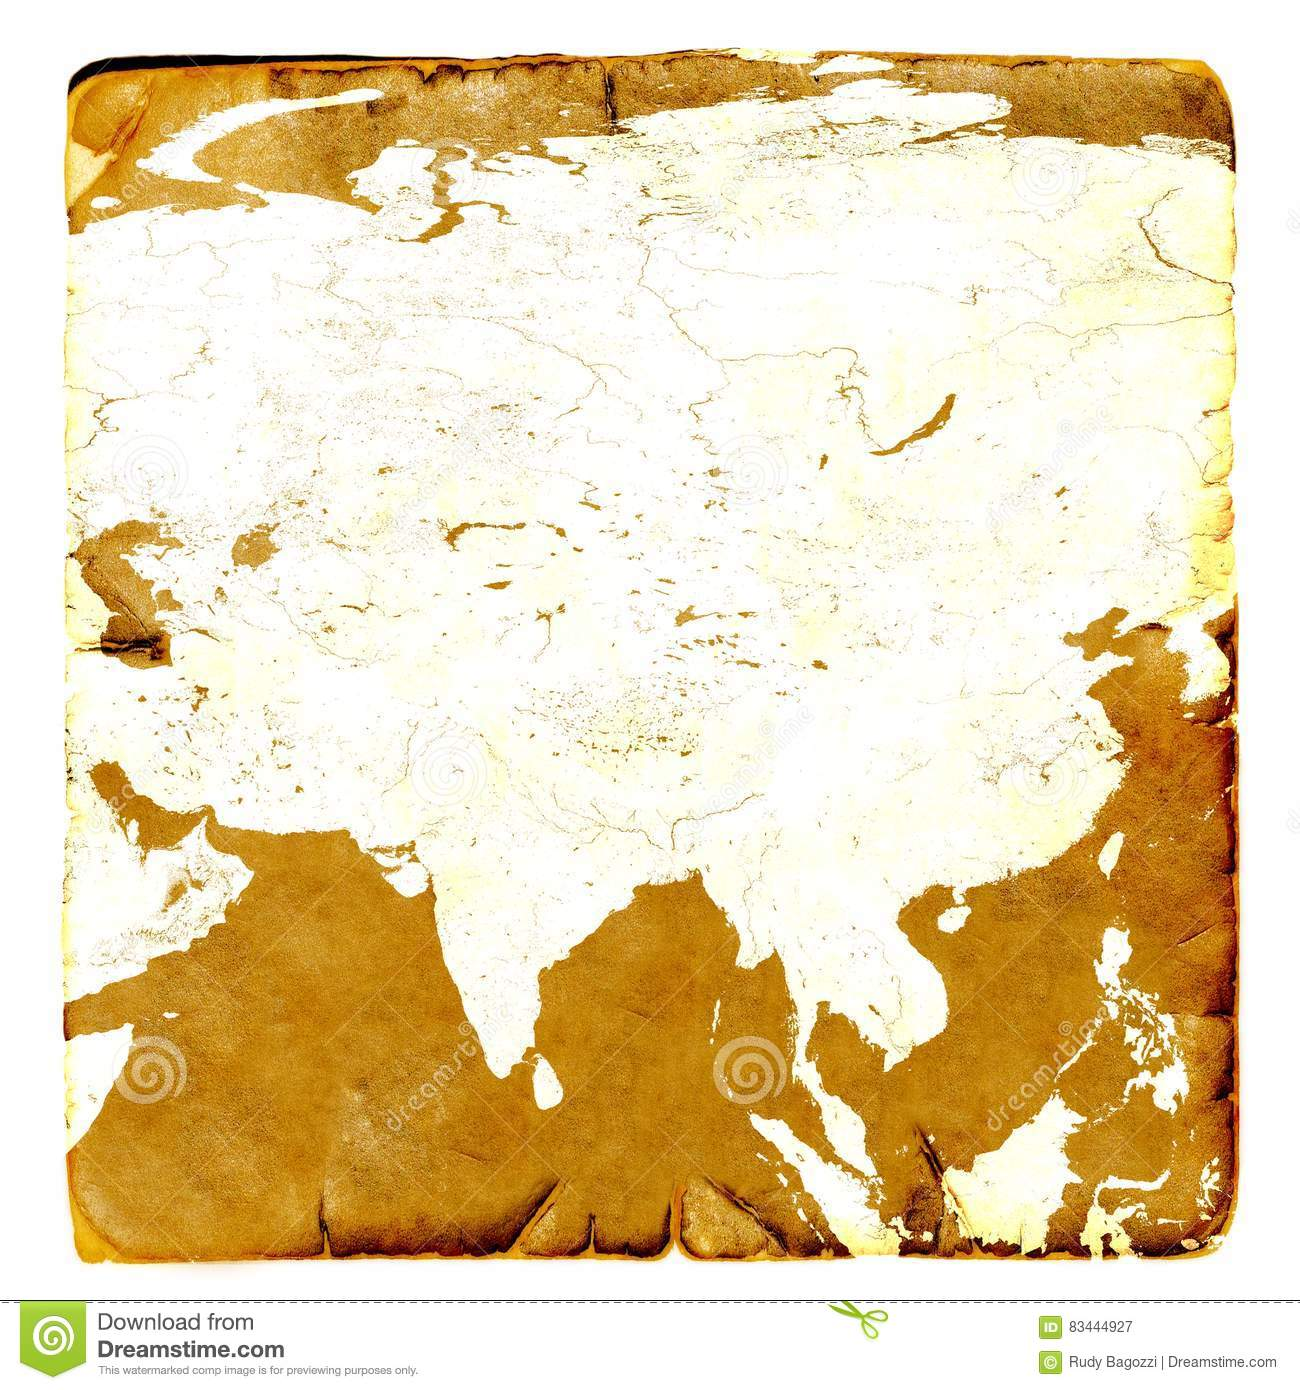 China On Map Of Asia.Map Of Asia Continent Blank In Old Style Russia China India